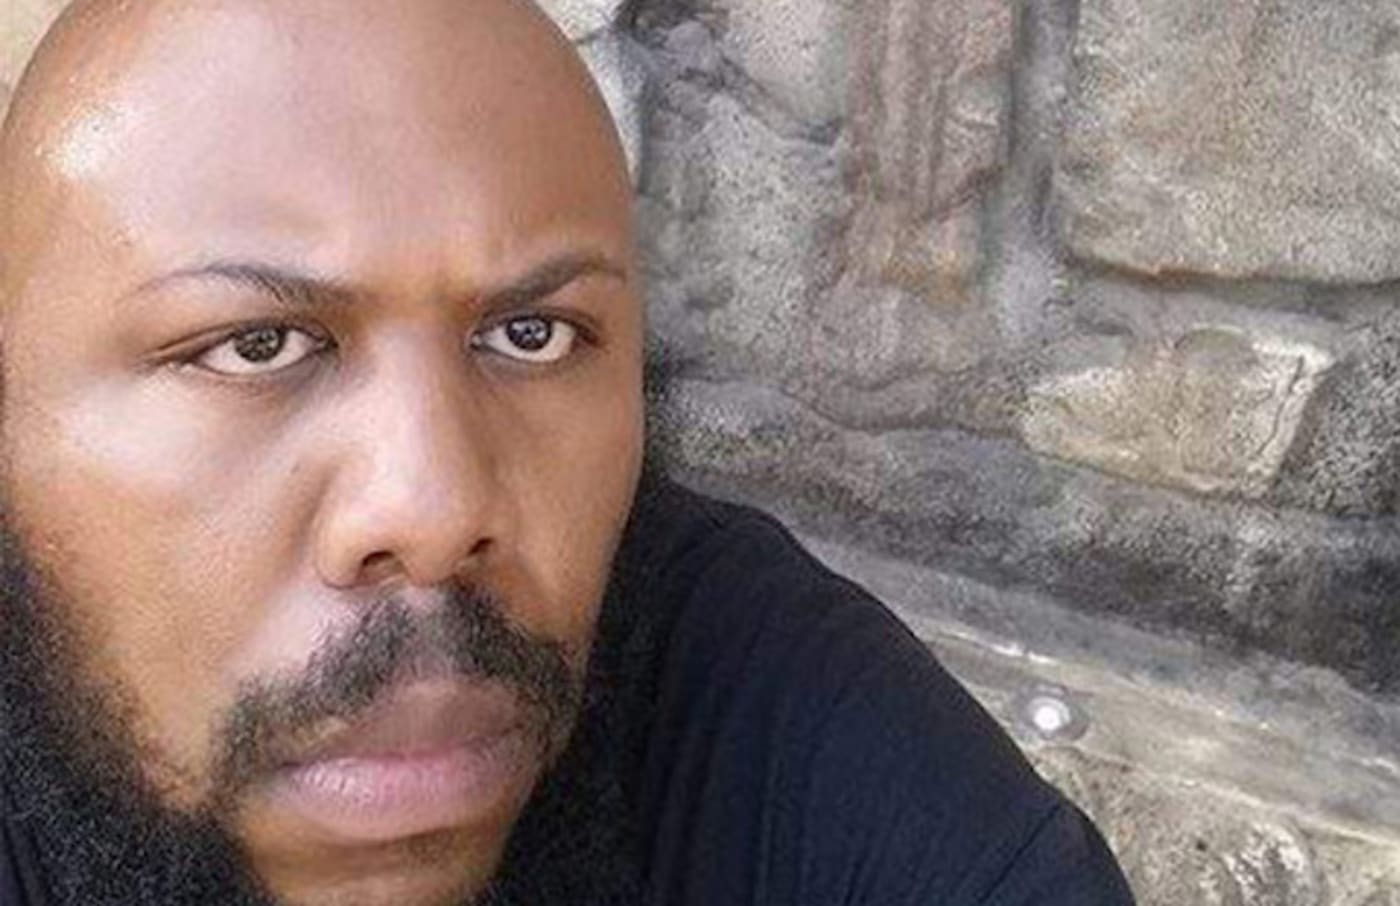 Stevie Steve is the alleged suspect involved in Cleveland killing.